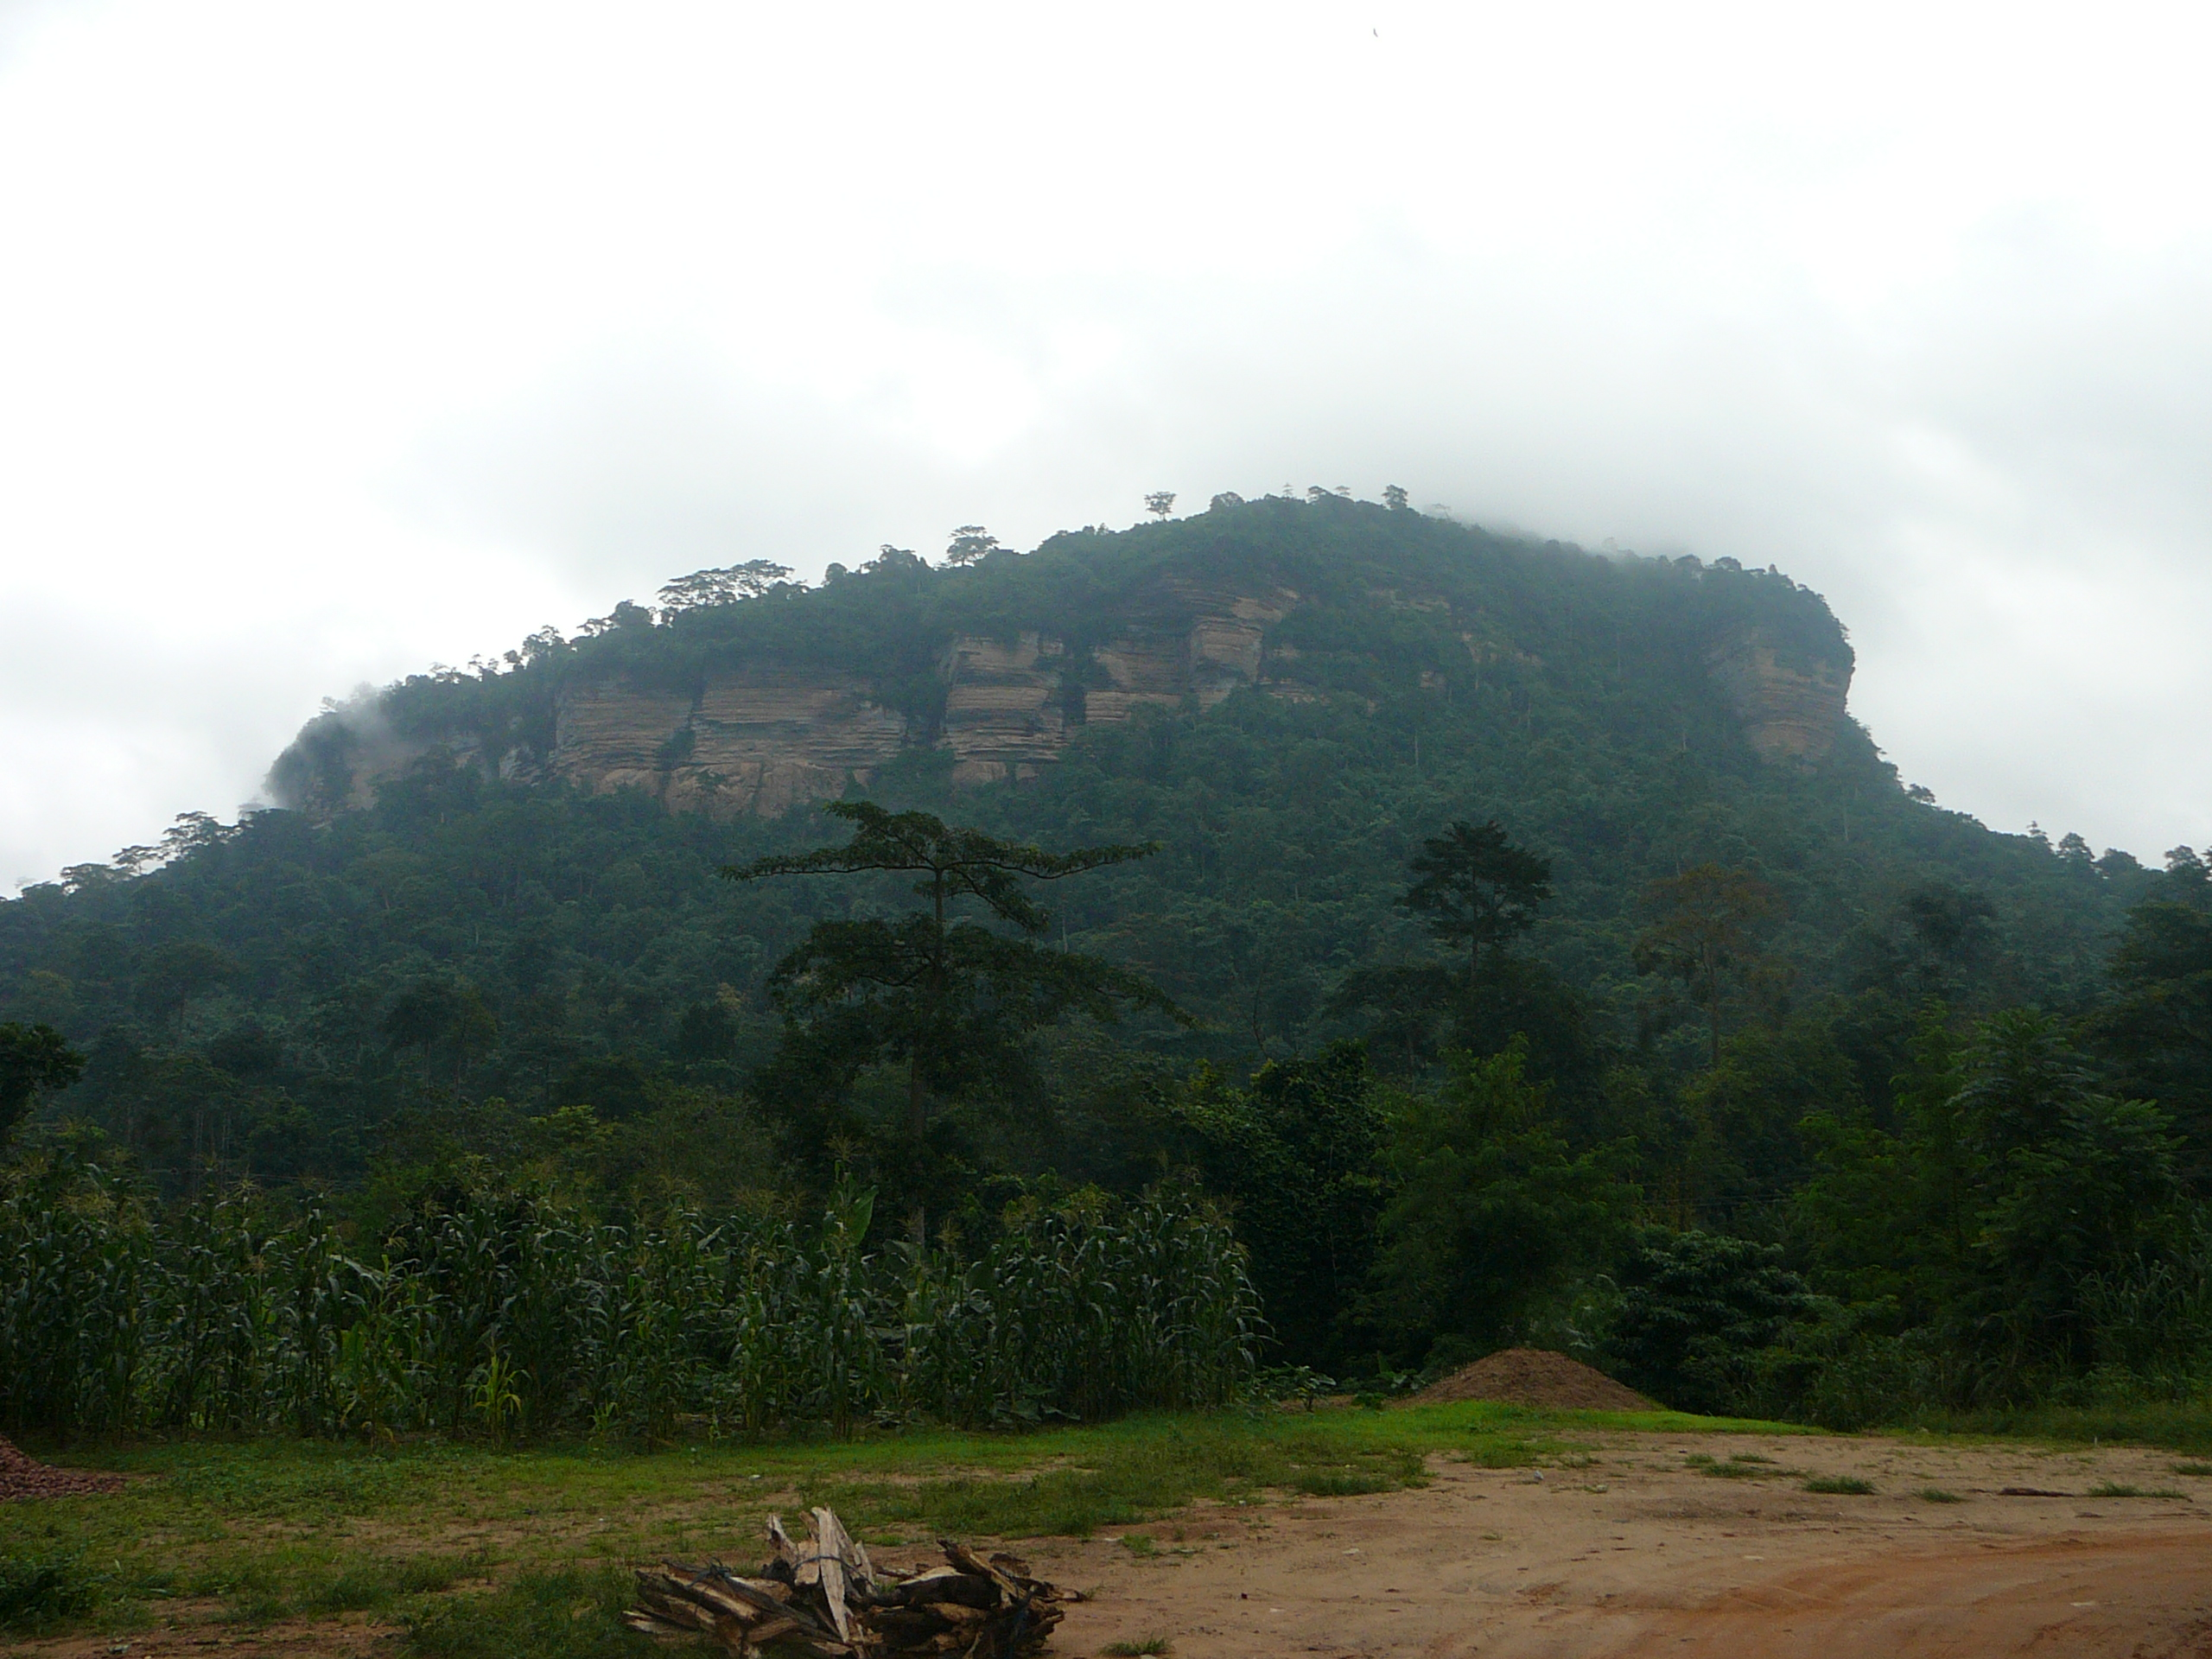 A mountain in Ghana, with clouds hanging low. The surroundings are filled with green trees